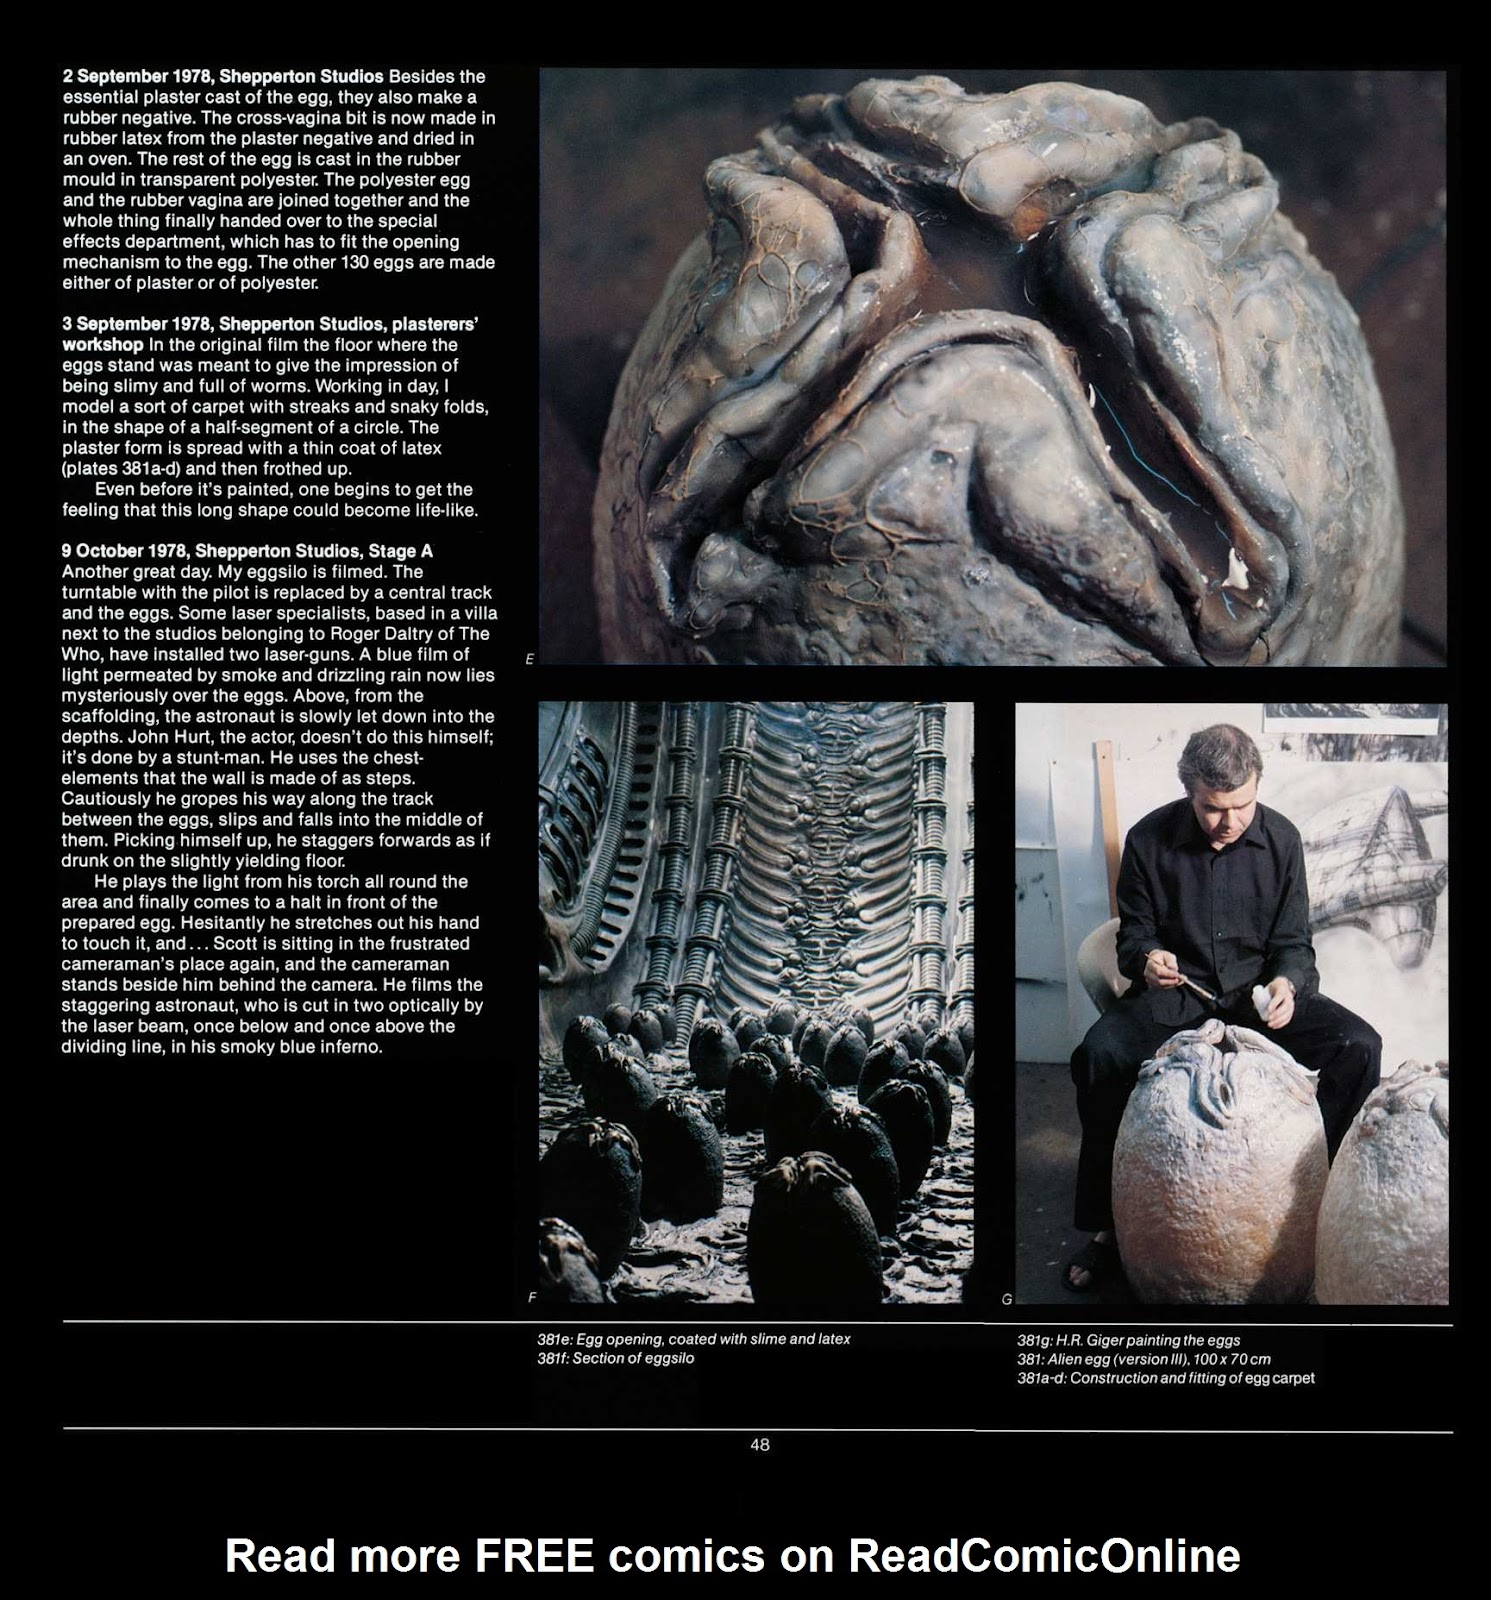 Read online Giger's Alien comic -  Issue # TPB - 50